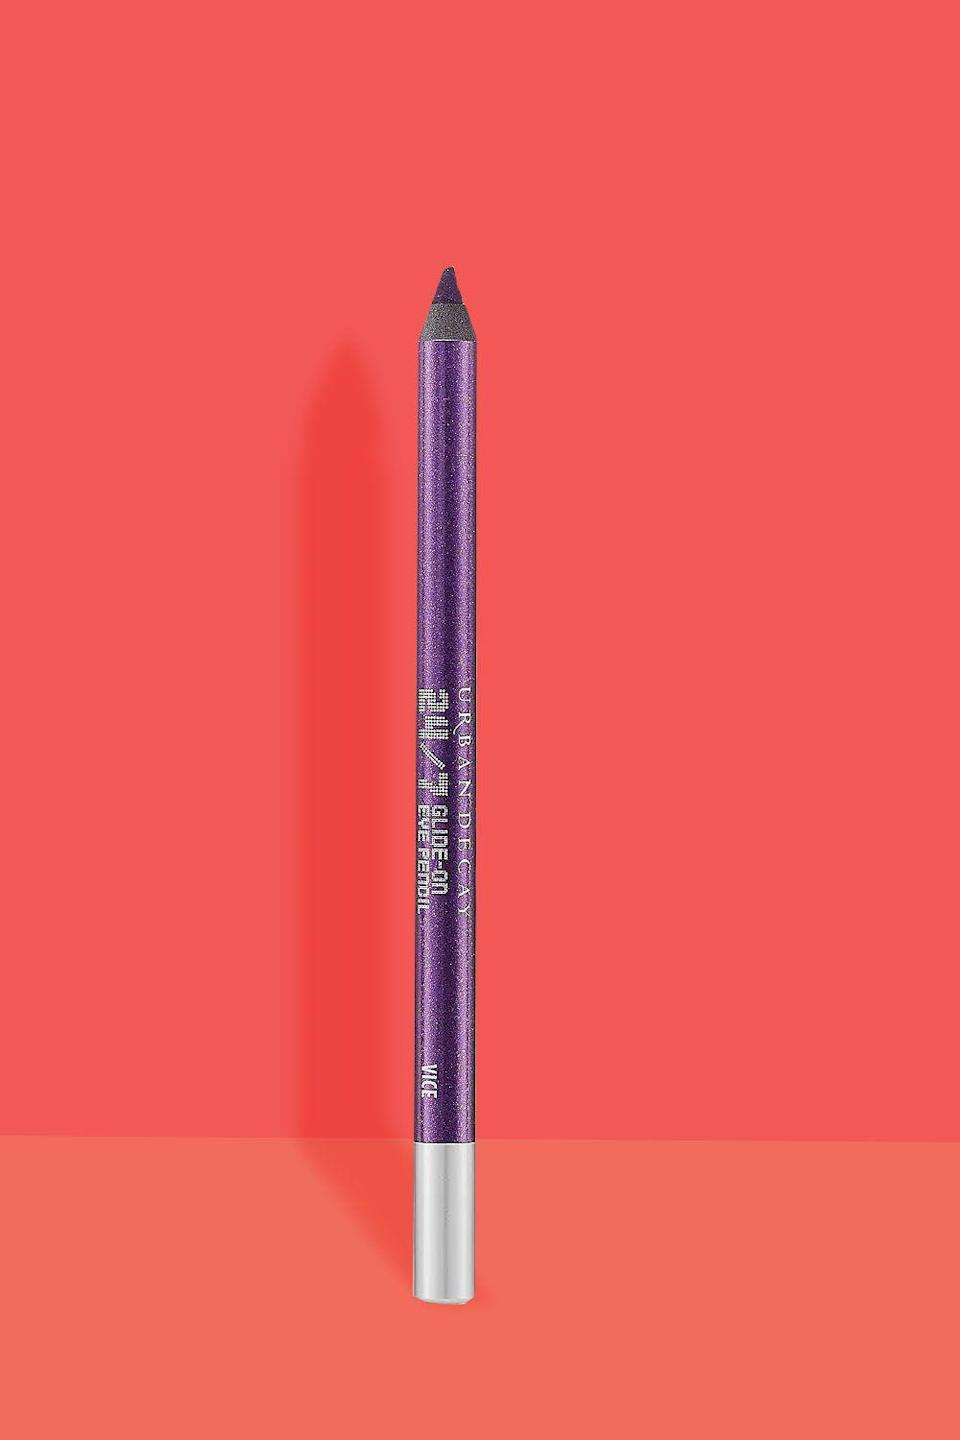 """<p><strong>URBAN DECAY</strong></p><p>macys.com</p><p><strong>$22.00</strong></p><p><a href=""""https://shop.nordstrom.com/s/urban-decay-24-7-glide-on-eye-pencil/3882160"""" rel=""""nofollow noopener"""" target=""""_blank"""" data-ylk=""""slk:Shop Now"""" class=""""link rapid-noclick-resp"""">Shop Now</a></p><p>Into the final product? Lavonne used <strong>Urban Decay 24/7 Glide-On Eye Pencil in Vice and Delinquent.</strong></p>"""